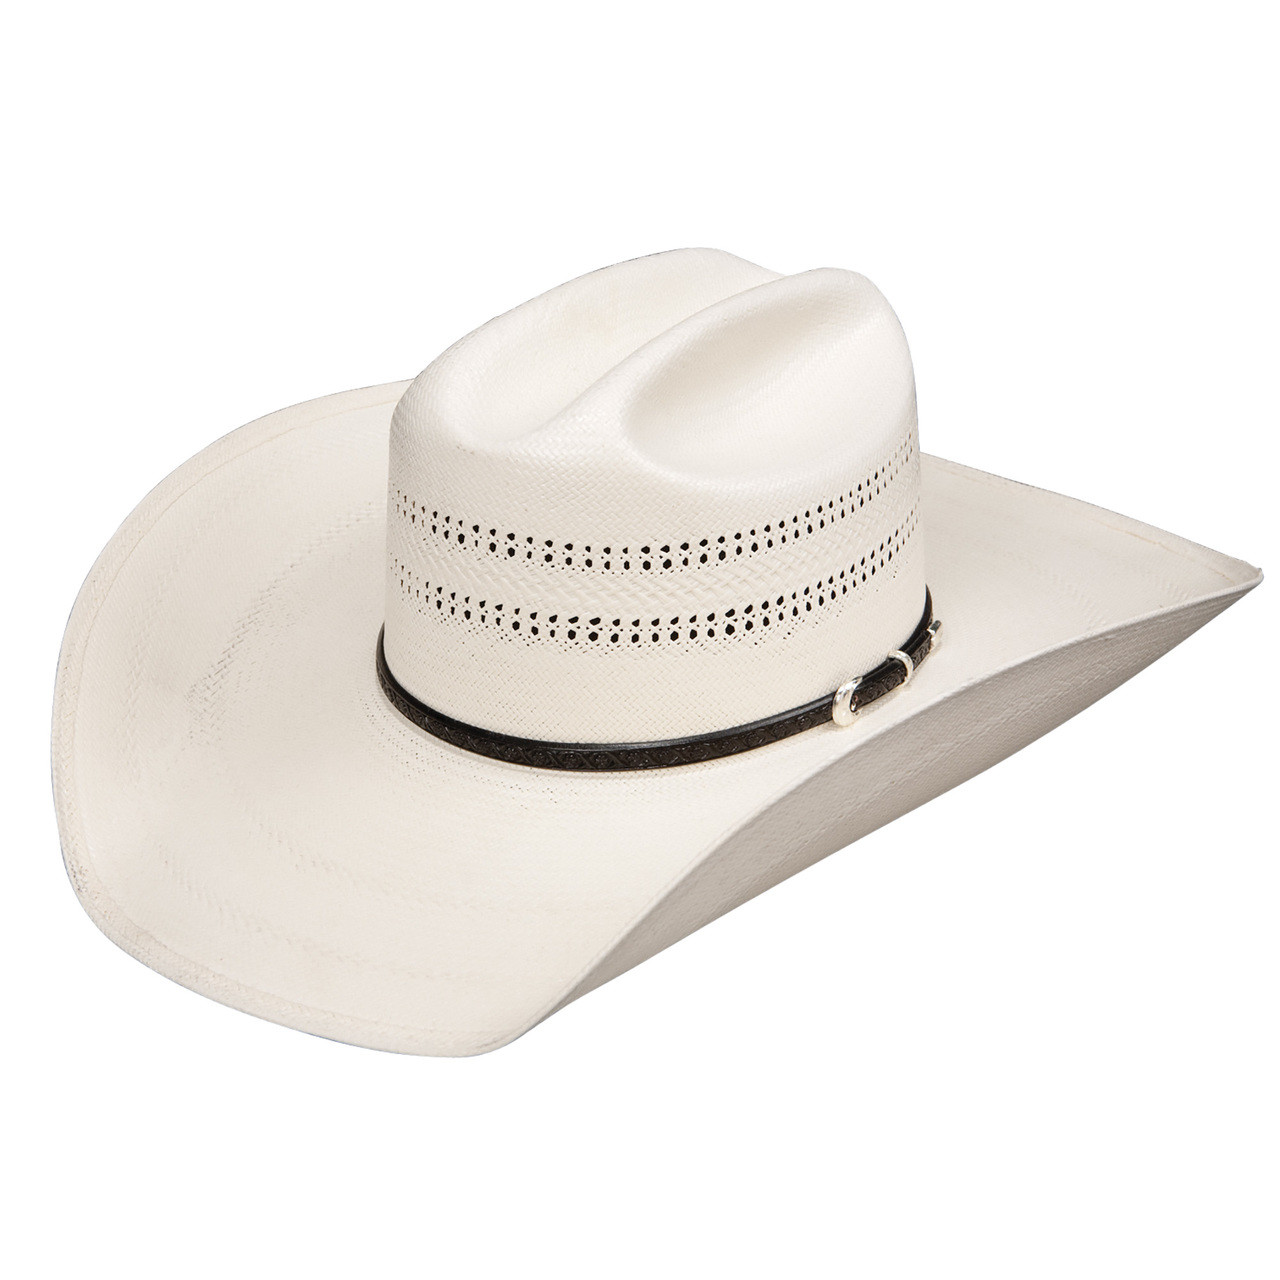 2c75324326d Stetson Mens Hats - Southpoint – 10X Straw Cowboy Hat - Billy s ...